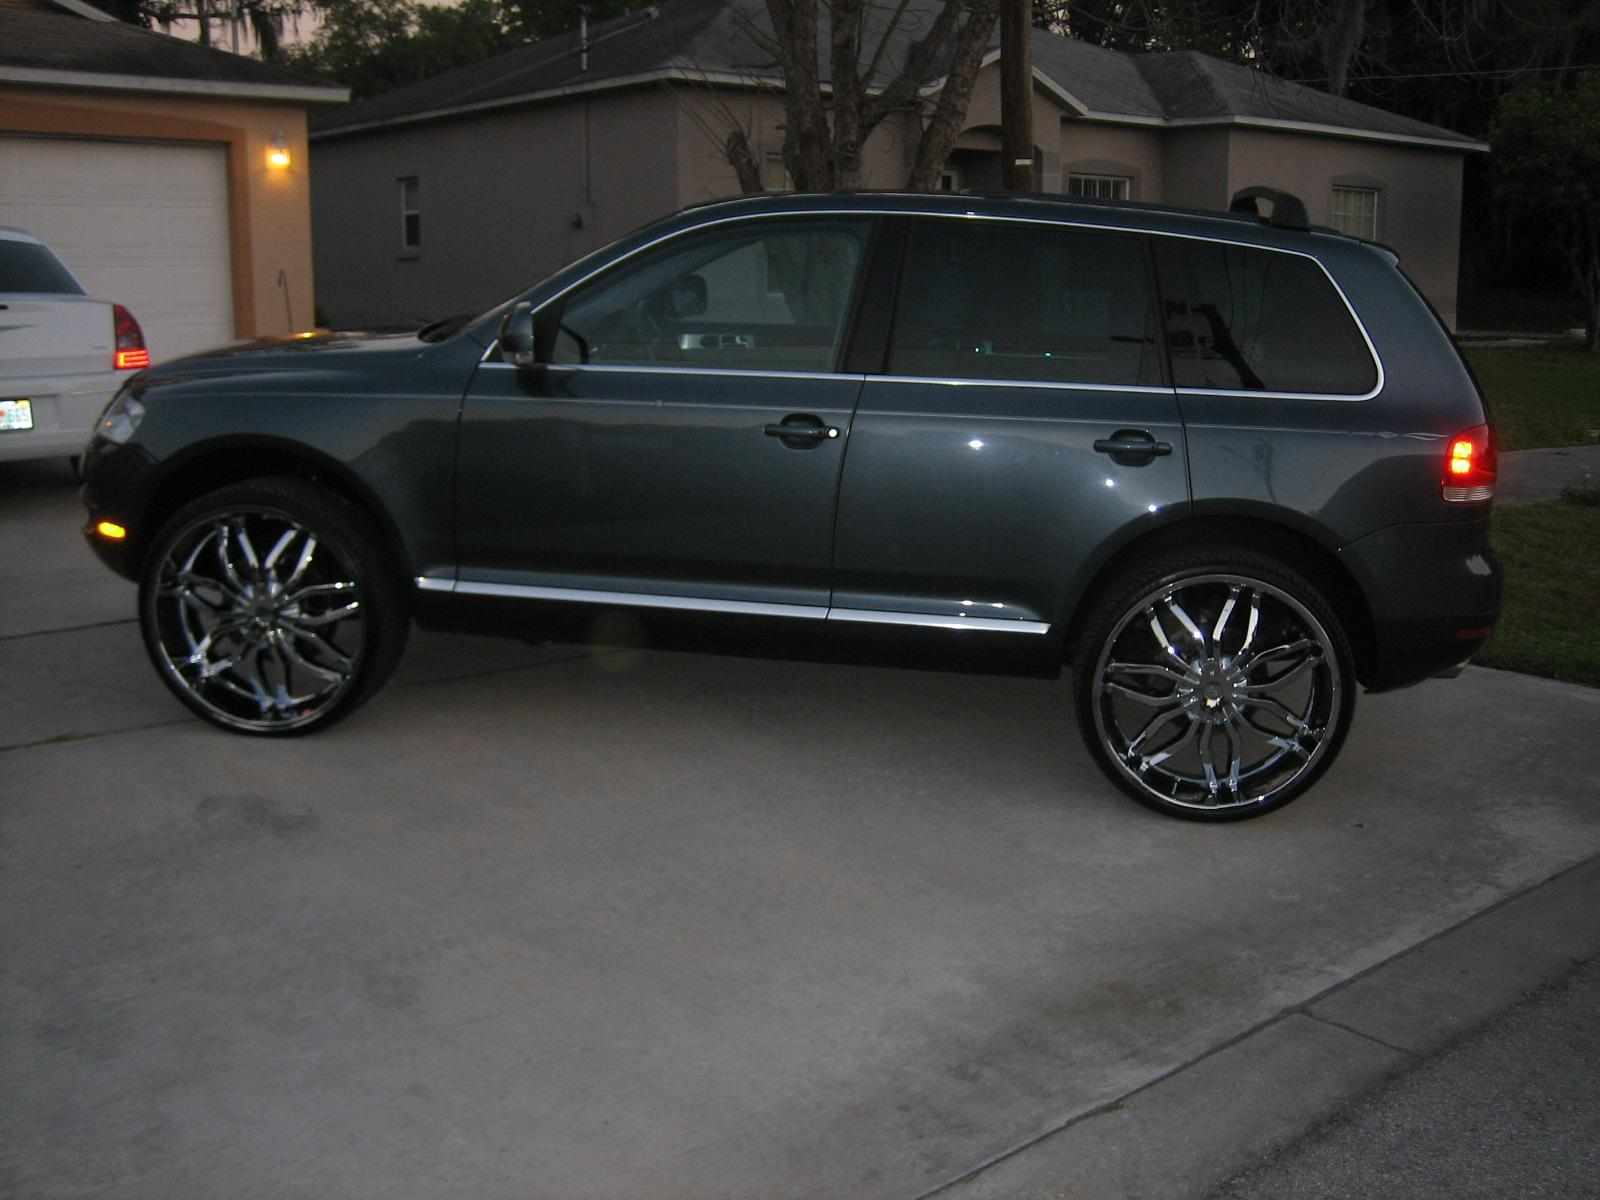 Jabu03 2004 Volkswagen Touaregv8x Sport Utility 4d Specs Photos Modification Info At Cardomain